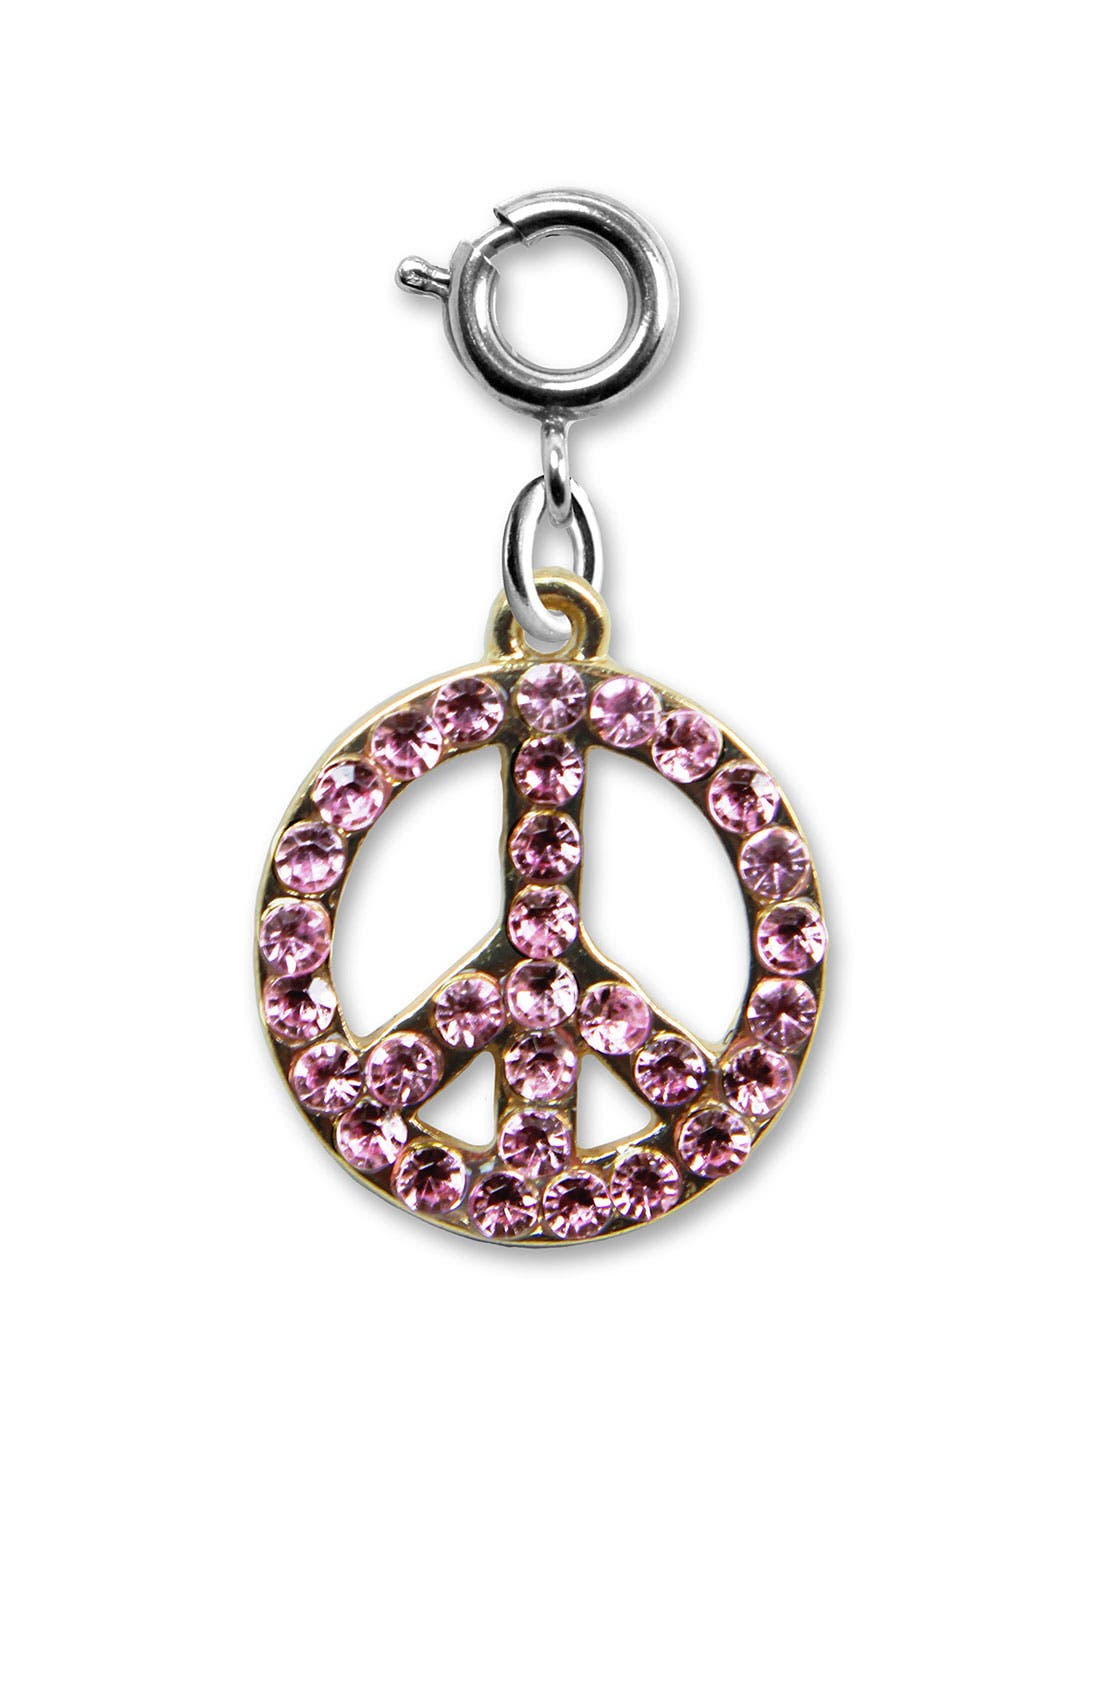 Alternate Image 1 Selected - CHARM IT!® 'Peace' Charm (Girls)